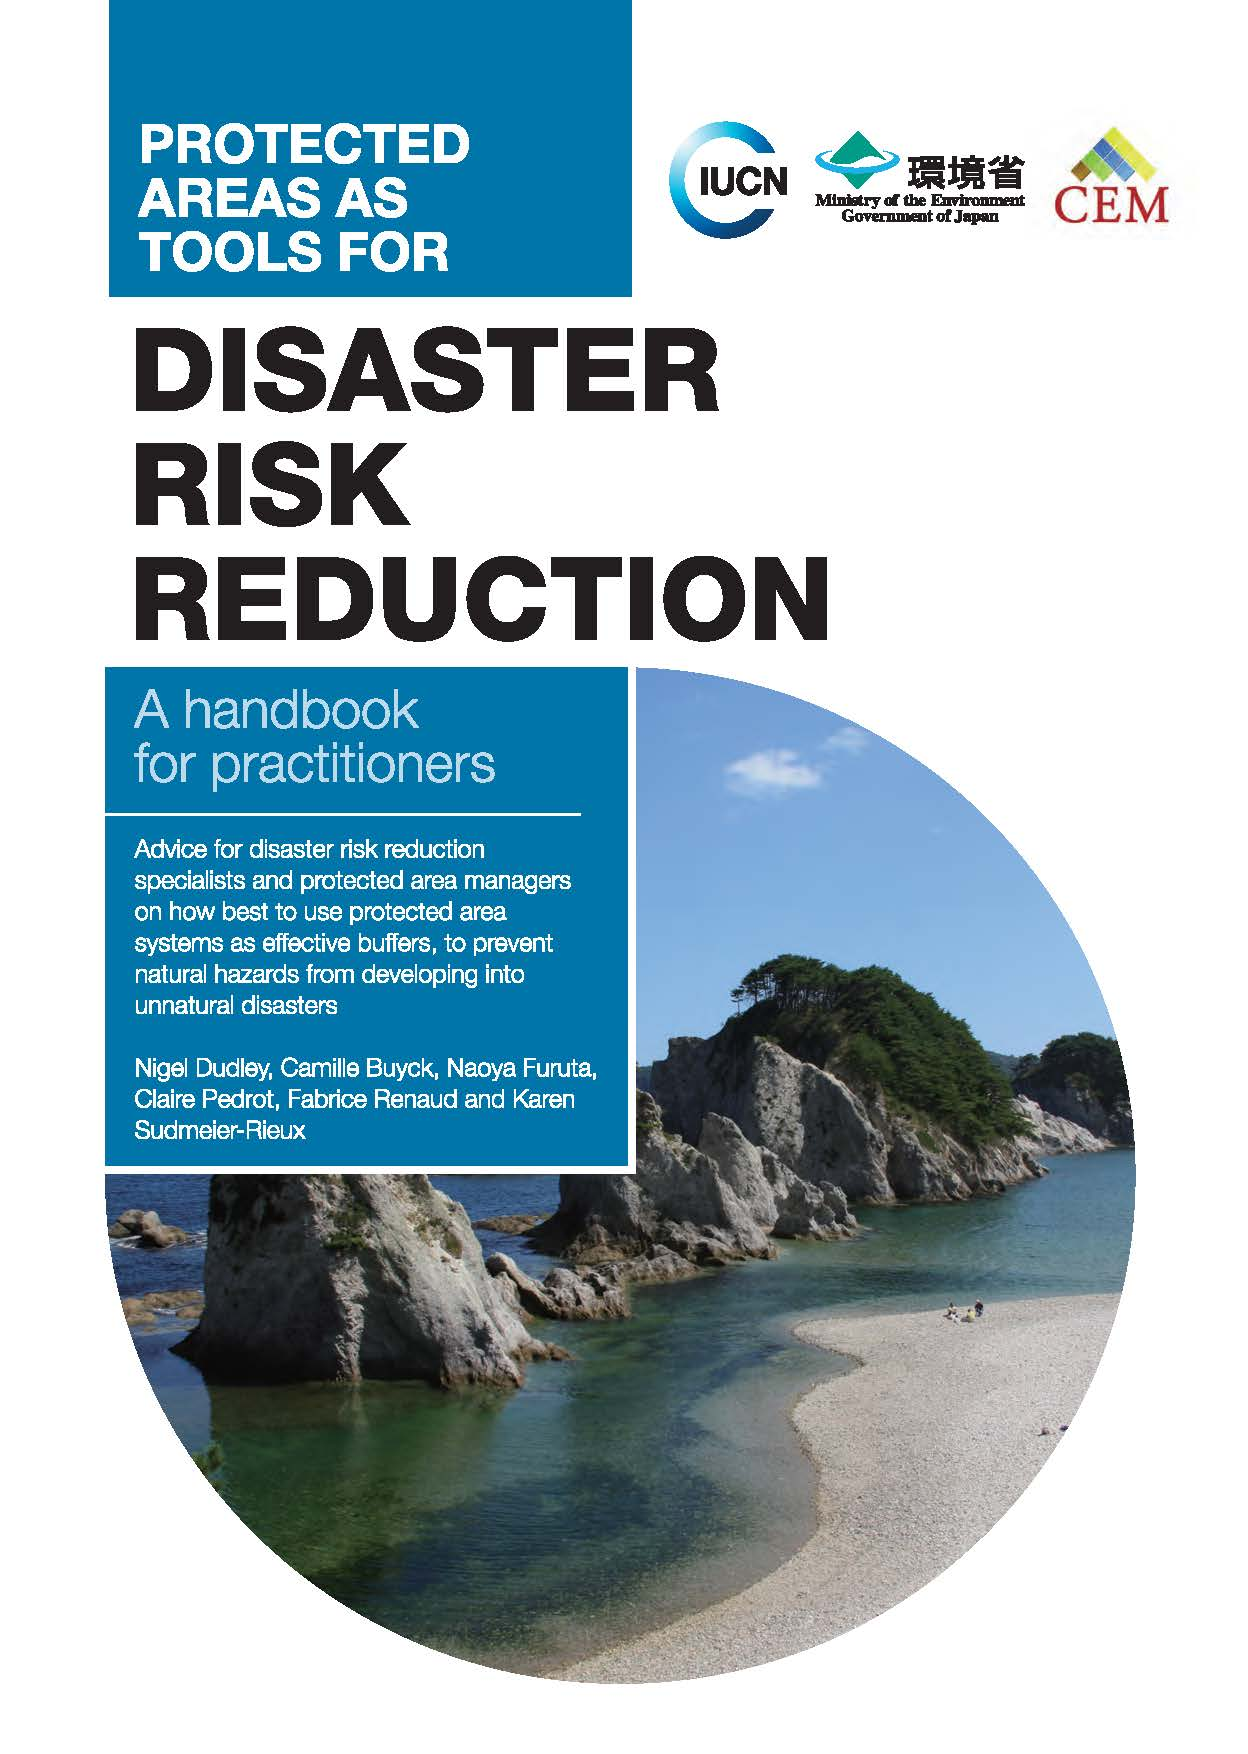 Capa da Protected areas as tools for disaster risk reduction. A handbook for practitioners.